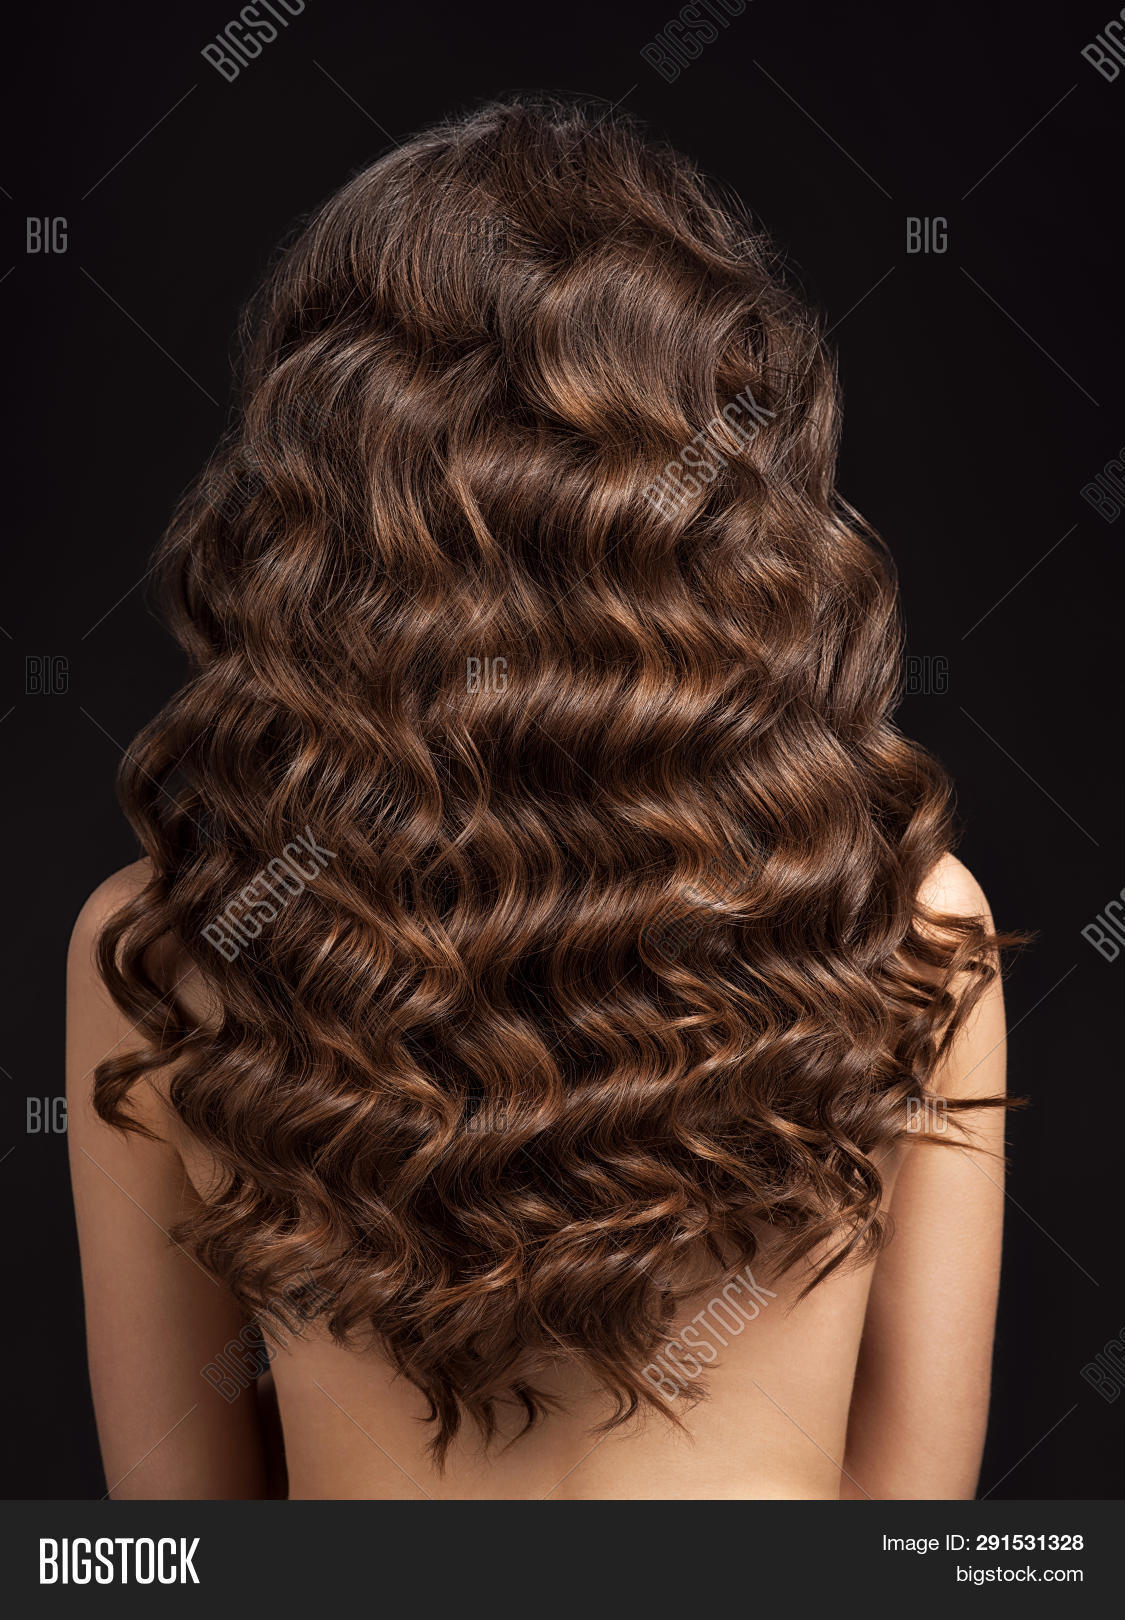 Girl Long Curly Hair Image Photo Free Trial Bigstock